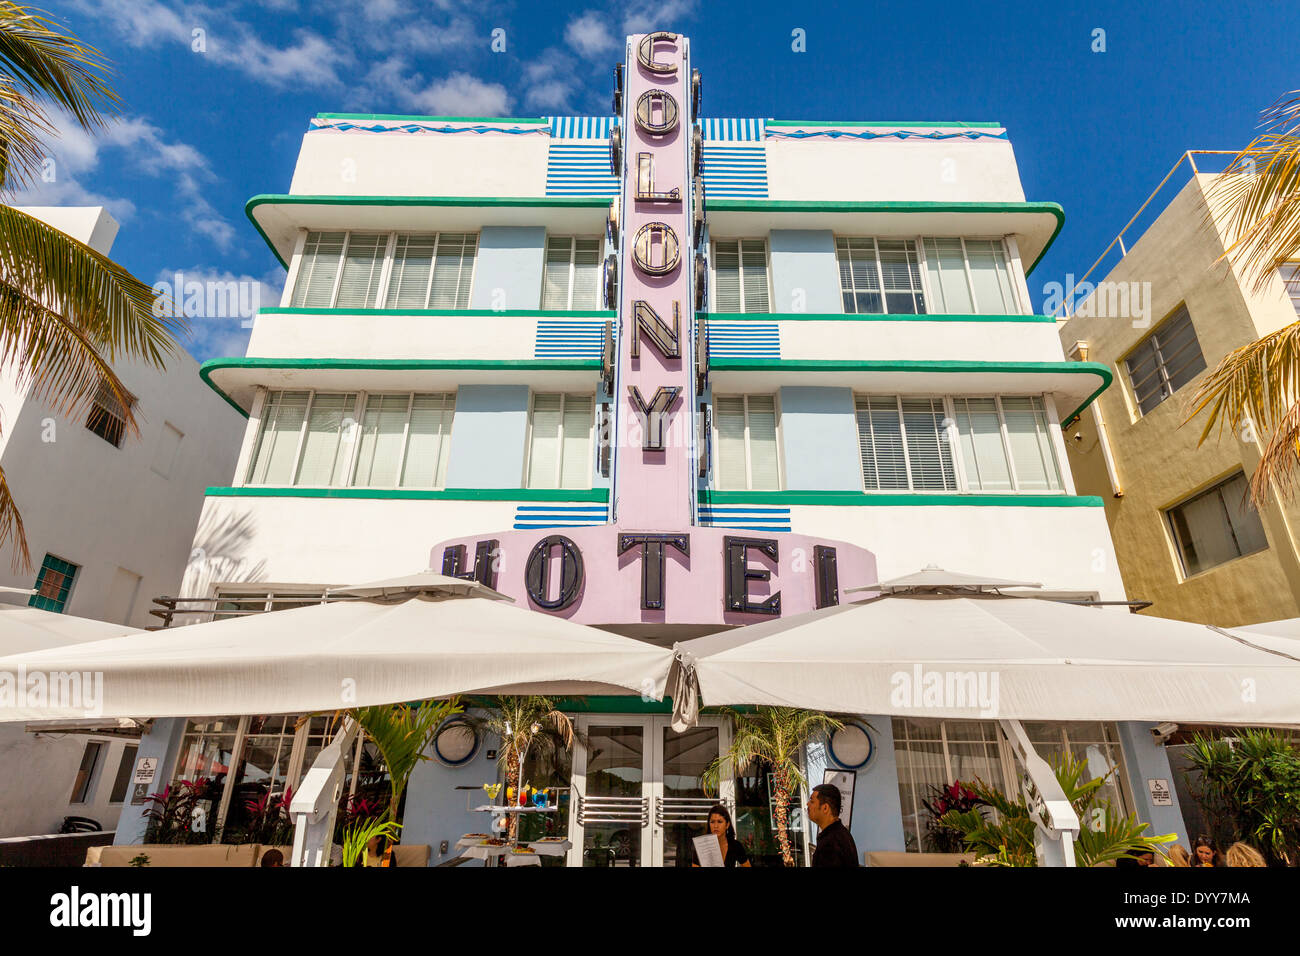 The Colony Hotel, South Beach, Miami, Florida, USA - Stock Image